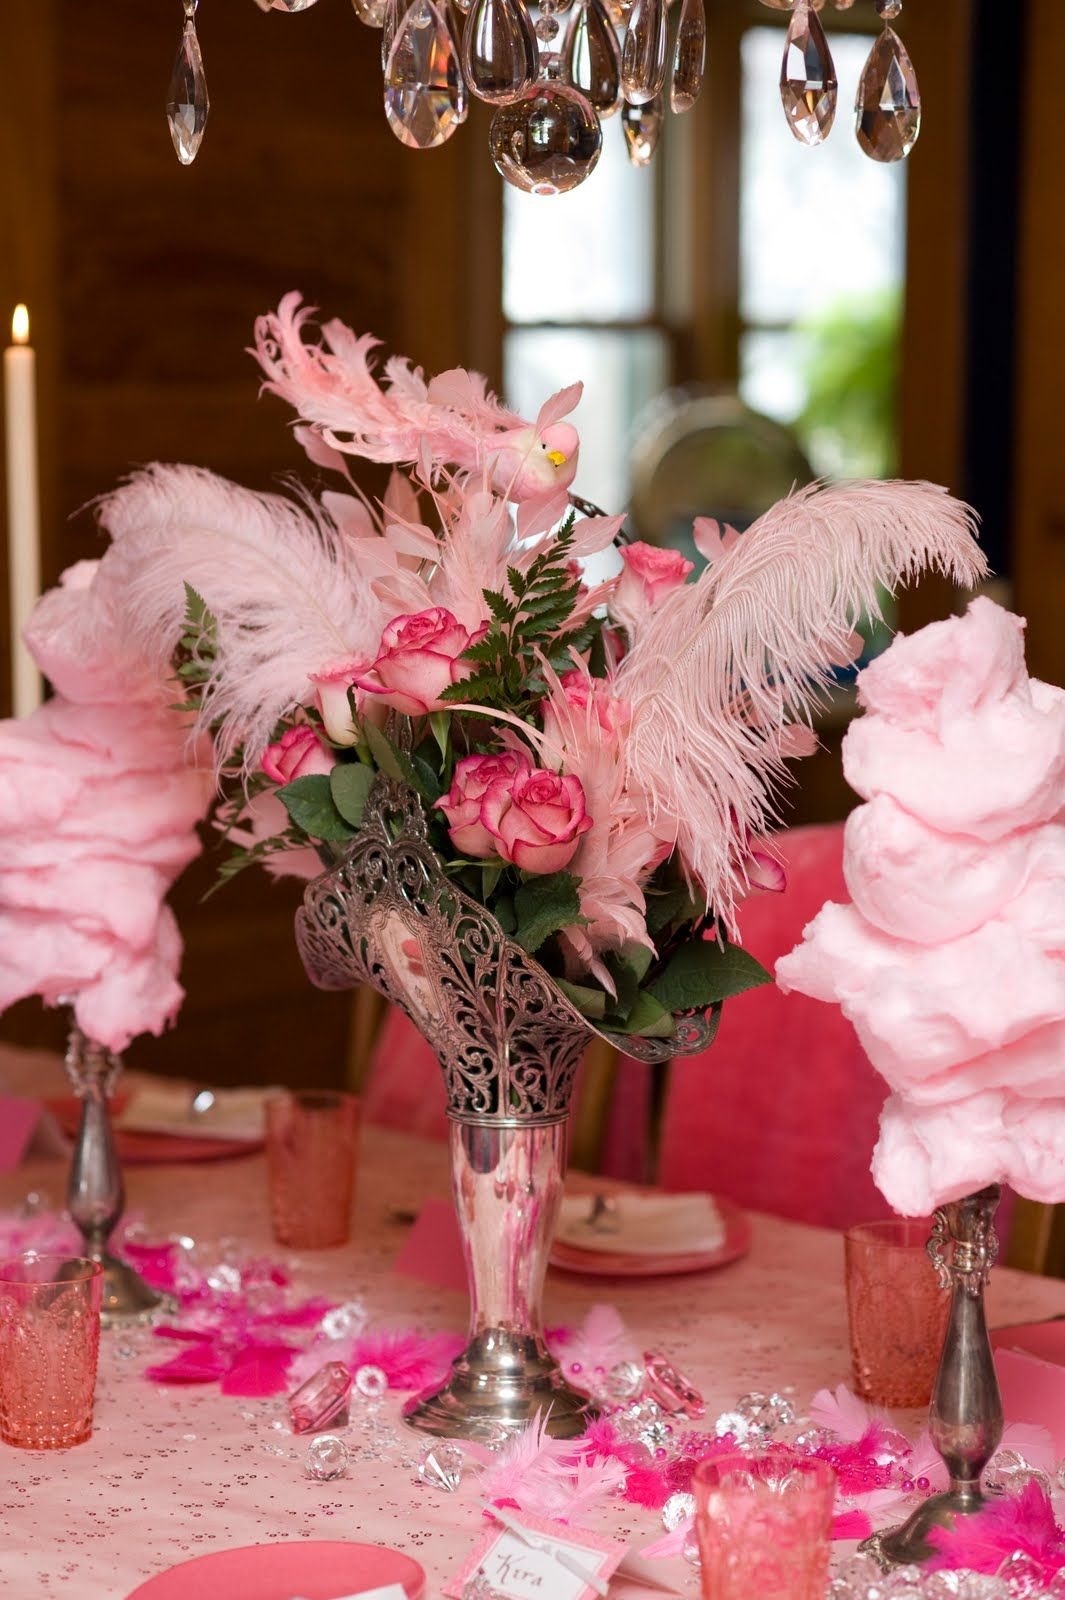 flowers & feathers centerpiece and cotton candy towers ...